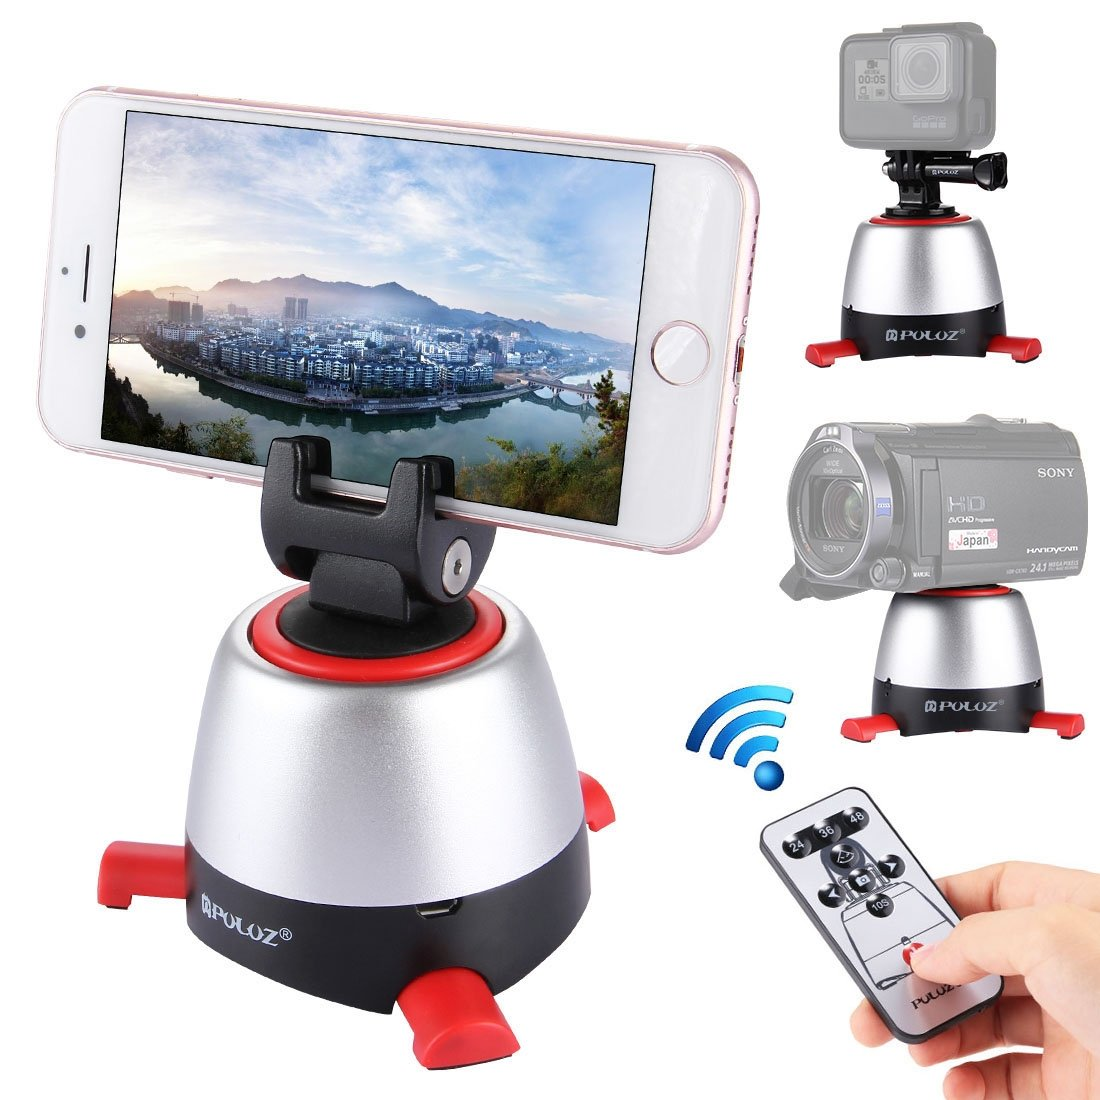 Panoramic Self-timer, PULUZ Electronic Intelligent 360 Degree Rotation Tripod Head with IR Remote Controller & Build-in Bluetooth for Most of Smartphones & Cameras Max load: 1KG/2.2lb by PULUZ